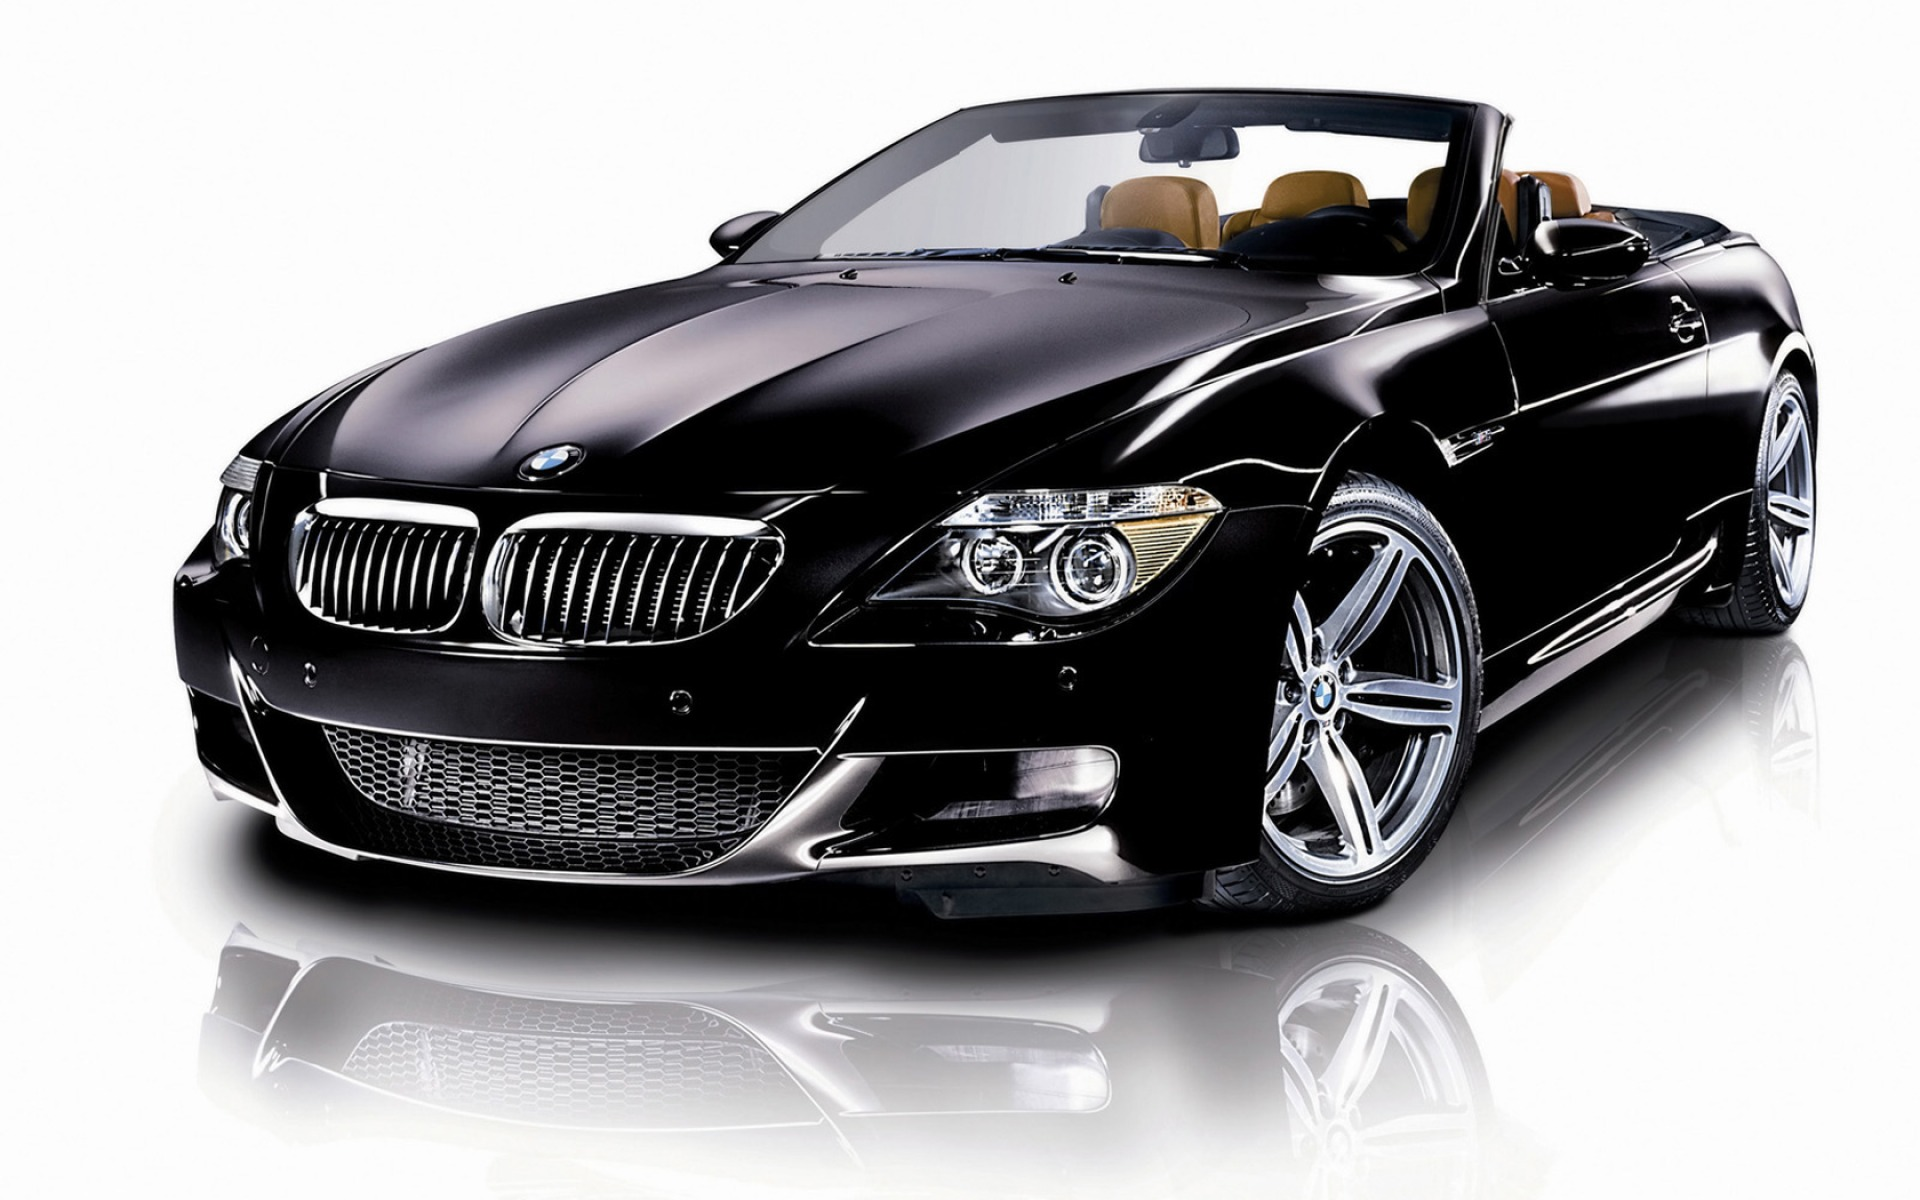 Ultrablogus  Prepossessing Bmw Car Wallpaper Wallpapers For Free Download About   With Licious Bmw M Convertible Wallpaper Bmw Cars With Amazing  Bmw Il Interior Also Audi Rs Red Interior In Addition Maxima Interior And Volvo S Interior As Well As Hyundai Saddle Interior Additionally  Mercury Cougar Interior From Allfreedownloadcom With Ultrablogus  Licious Bmw Car Wallpaper Wallpapers For Free Download About   With Amazing Bmw M Convertible Wallpaper Bmw Cars And Prepossessing  Bmw Il Interior Also Audi Rs Red Interior In Addition Maxima Interior From Allfreedownloadcom